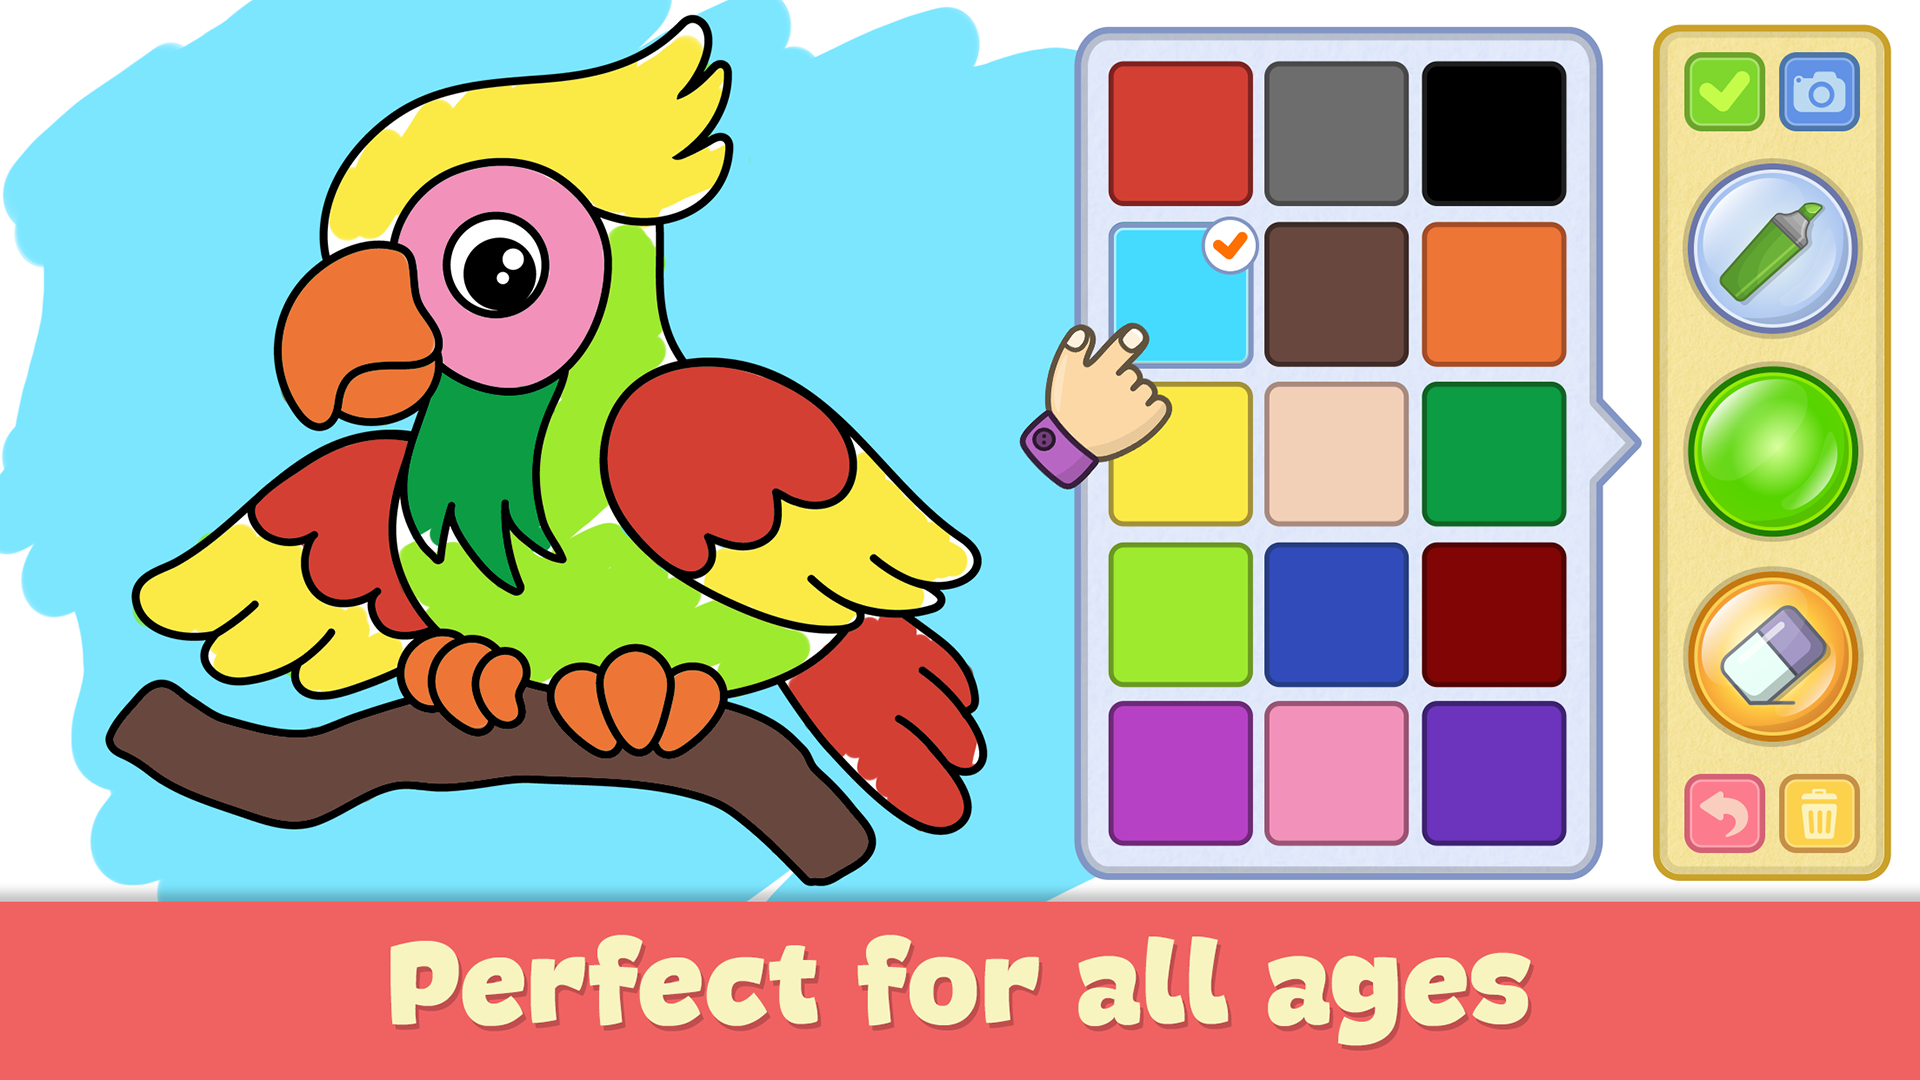 Amazon.com: Baby coloring games for kids: Appstore for Android